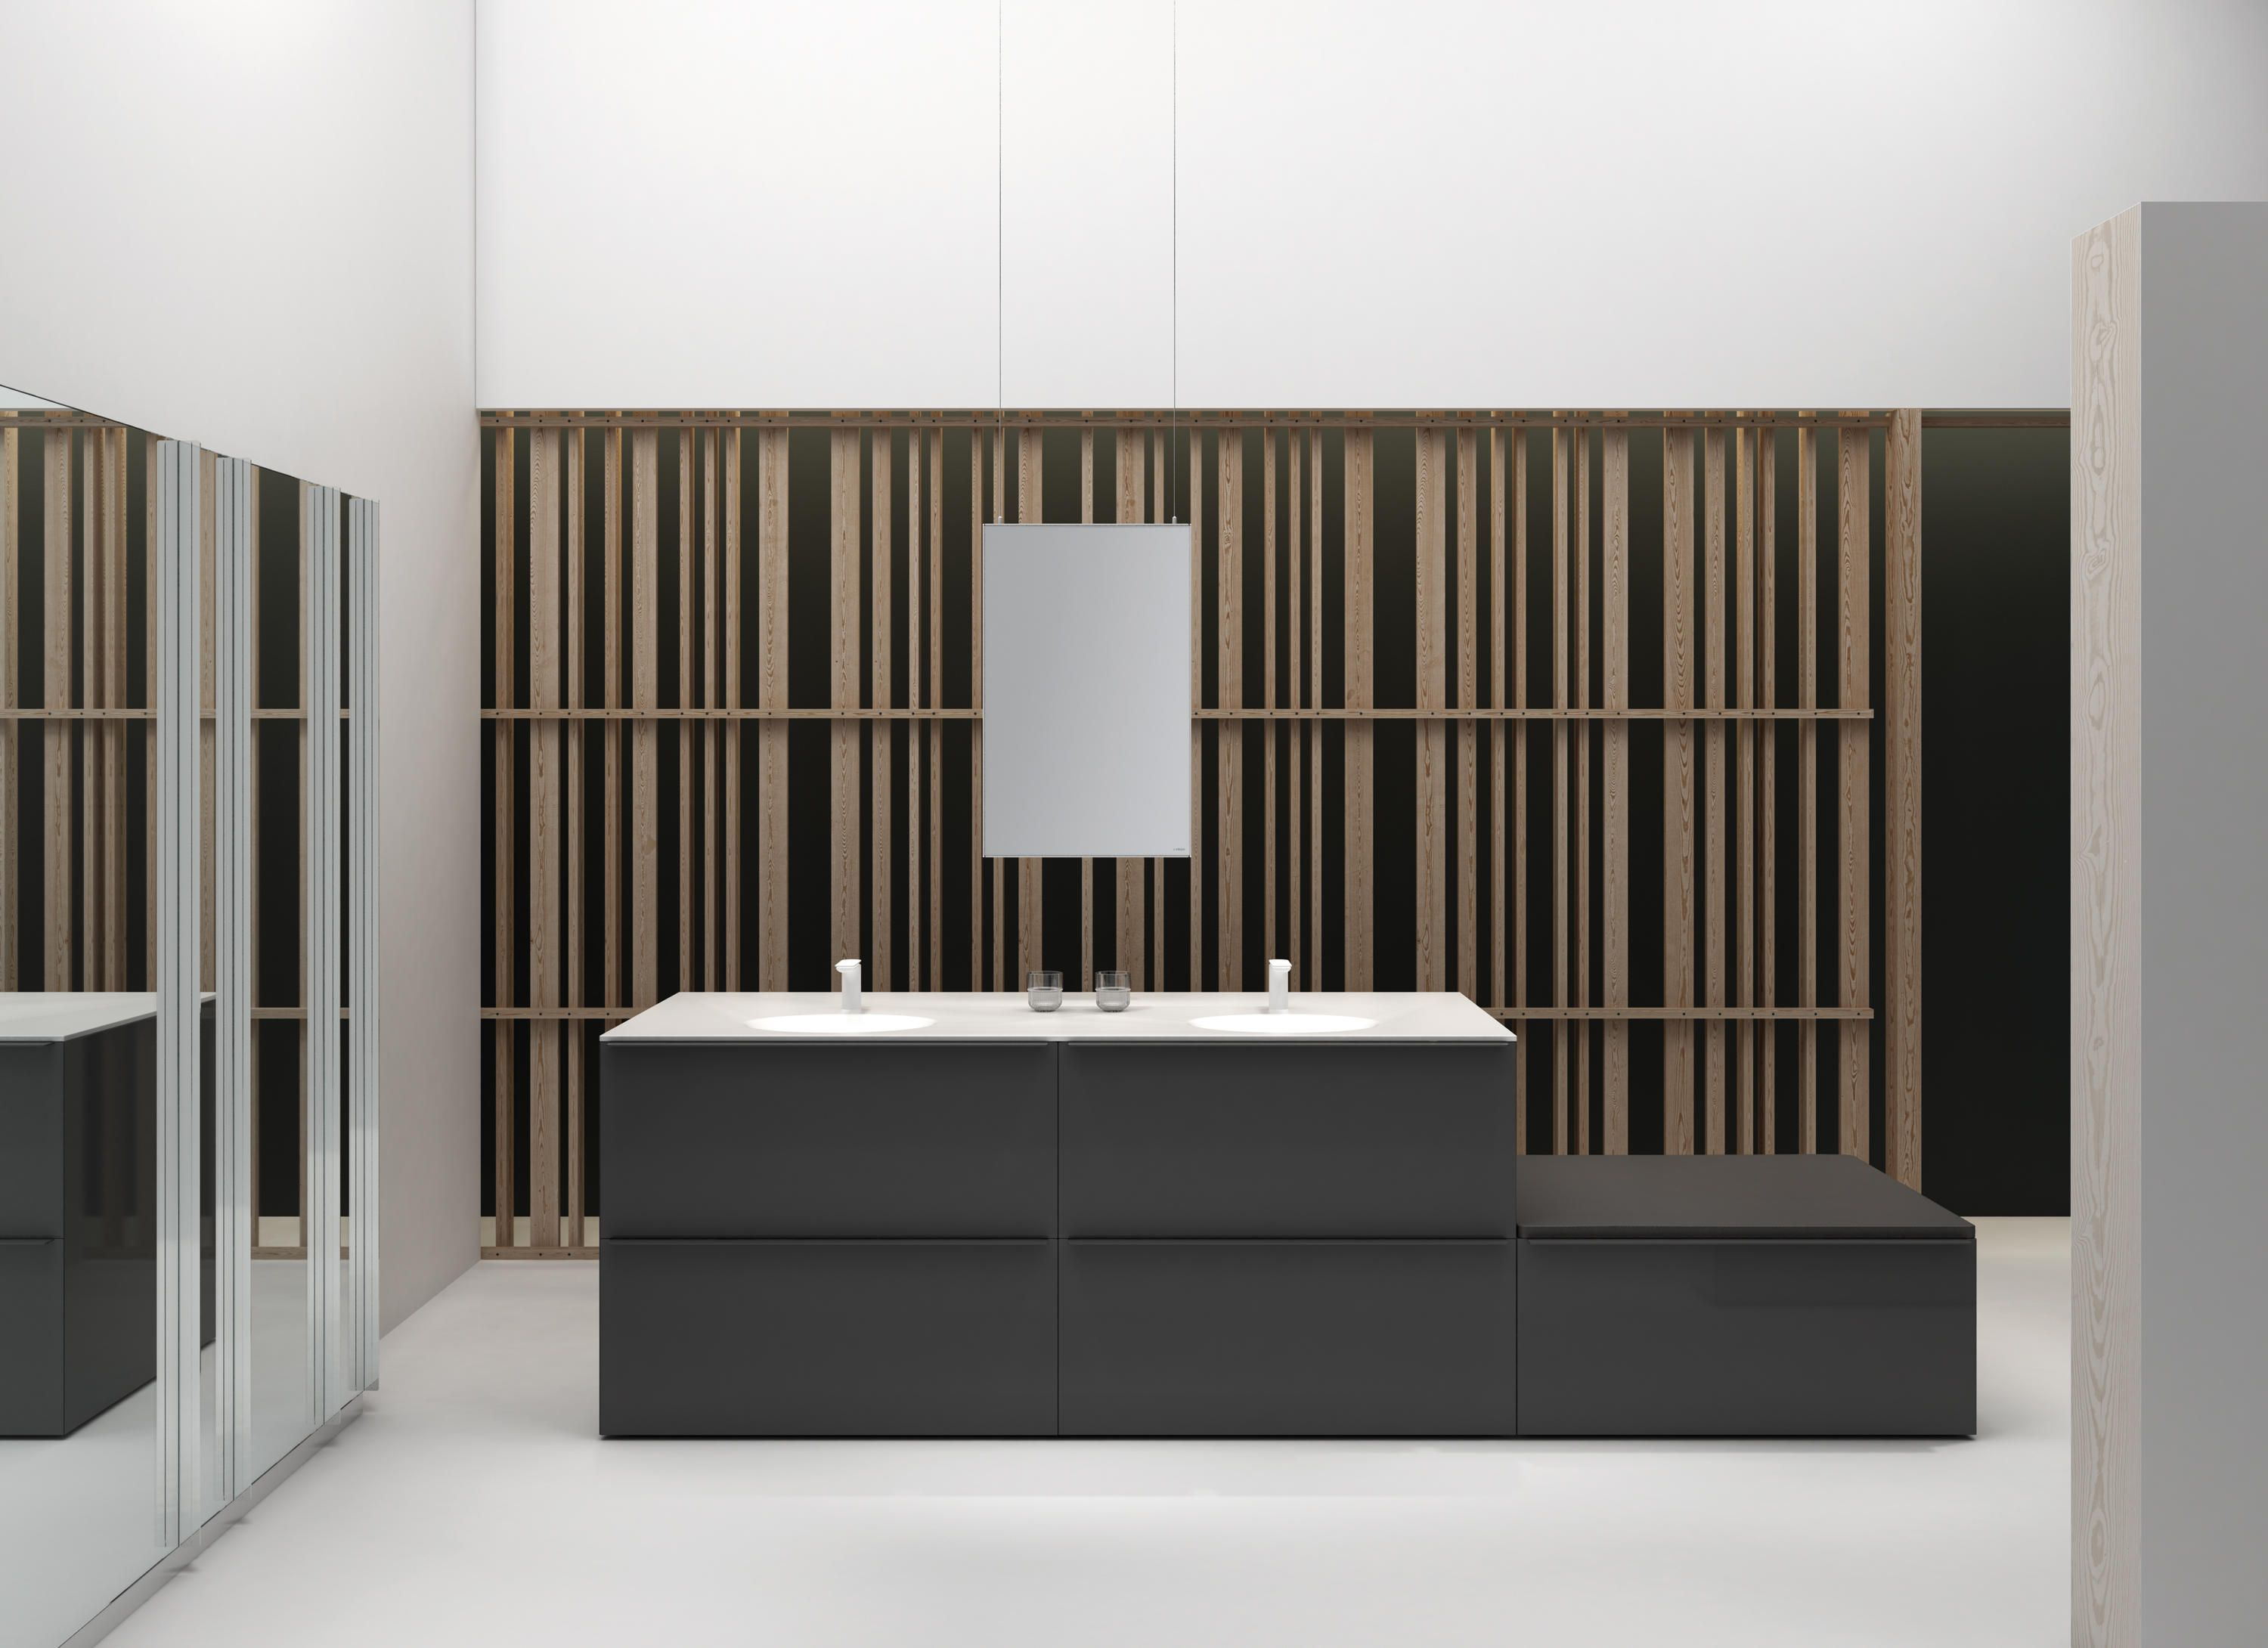 The KA collection answers to the preoccupation of procuring a warm and domestic place in the bathroom, capable of matching the same level of importance..